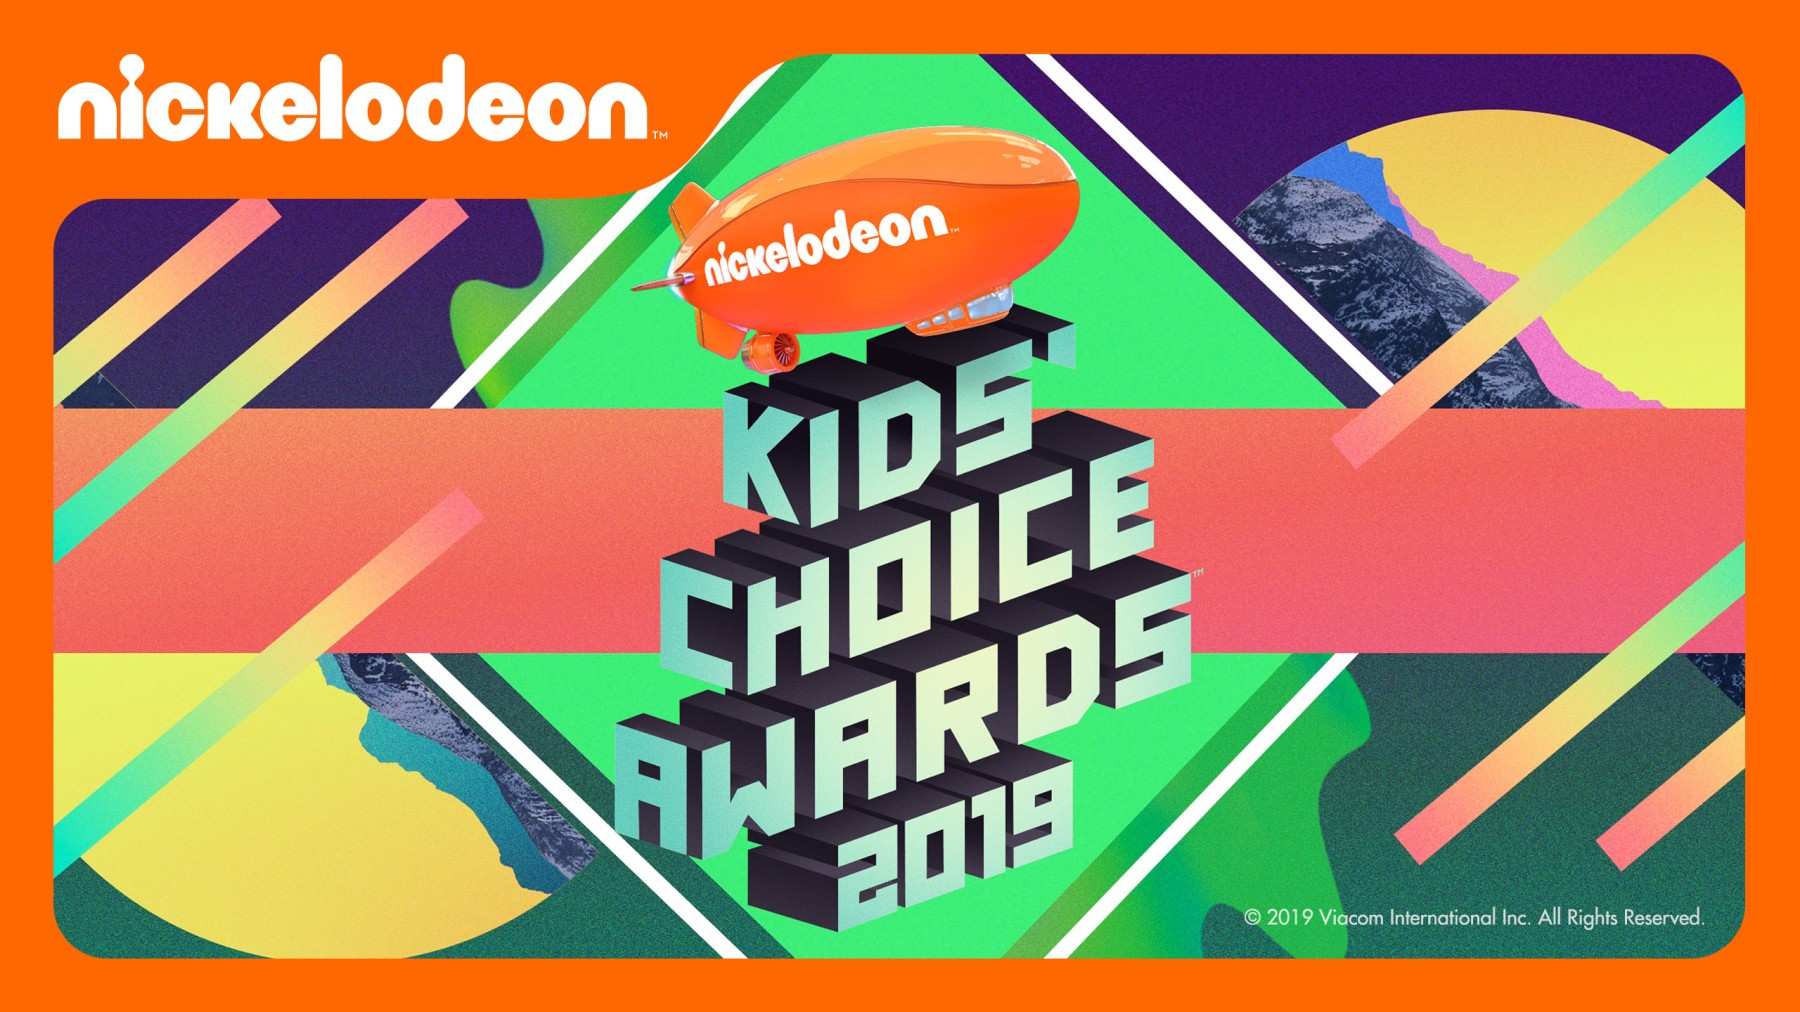 Nick Kids' Choice Awards 2019